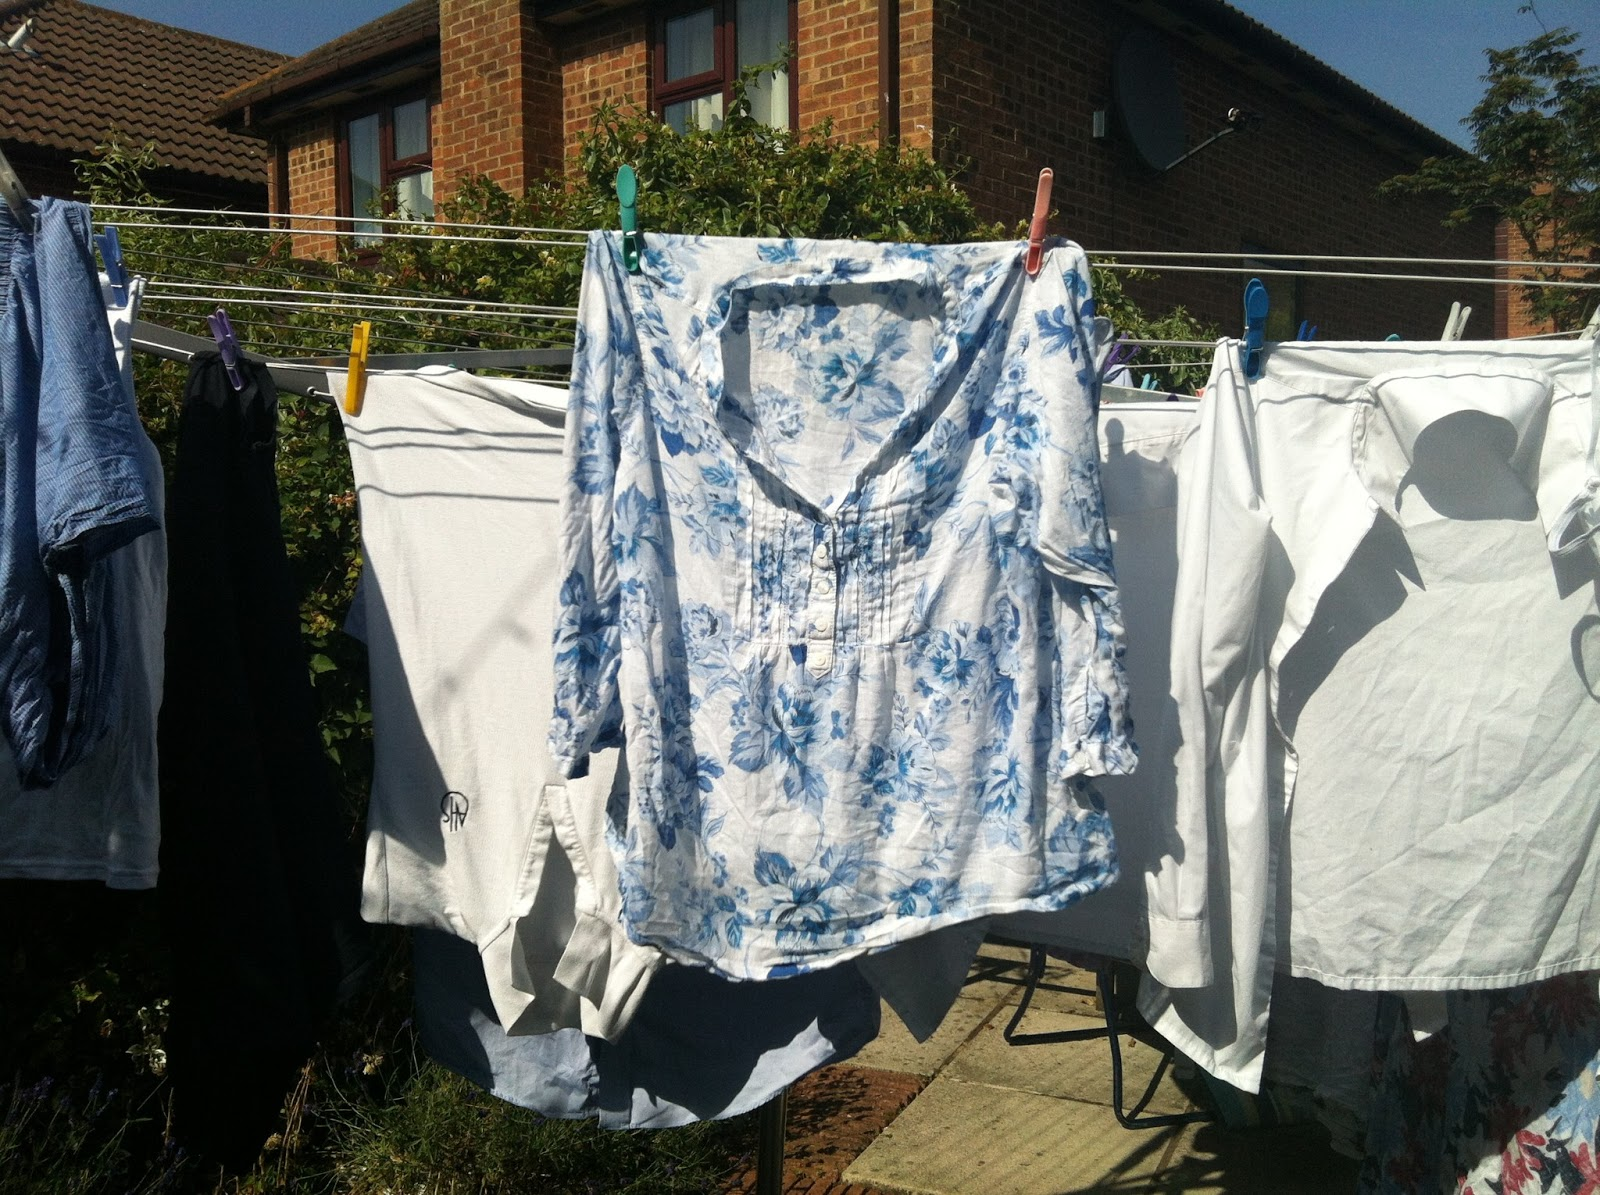 Confessions of an Oxfordshire stitcher: HOT HOT HOT